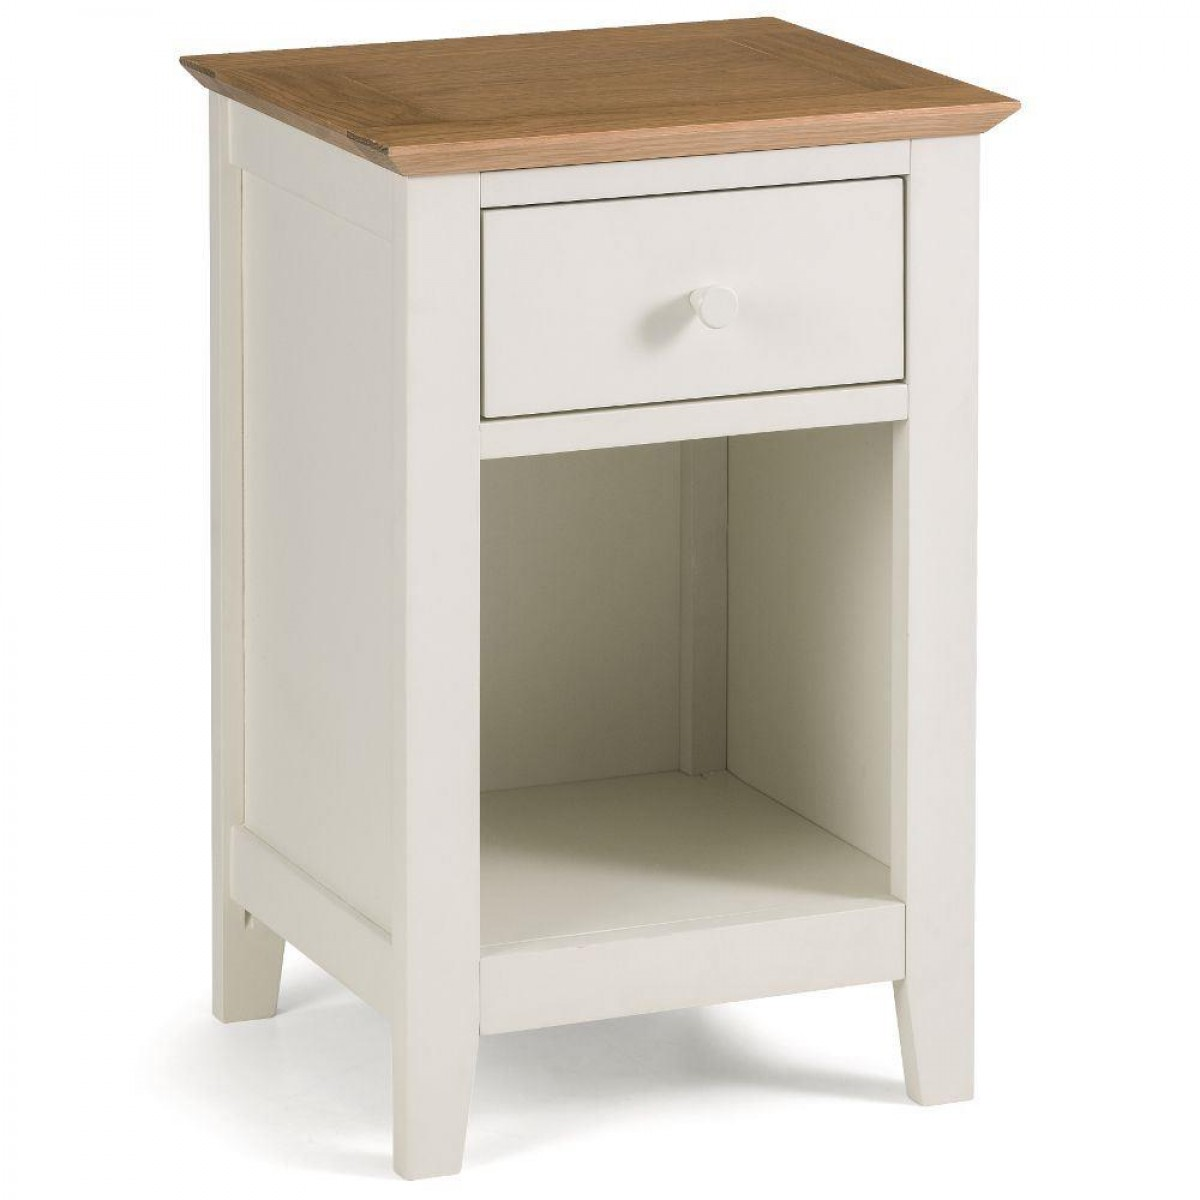 Salerno Ivory and Oak Wooden 1 Drawer Bedside Table